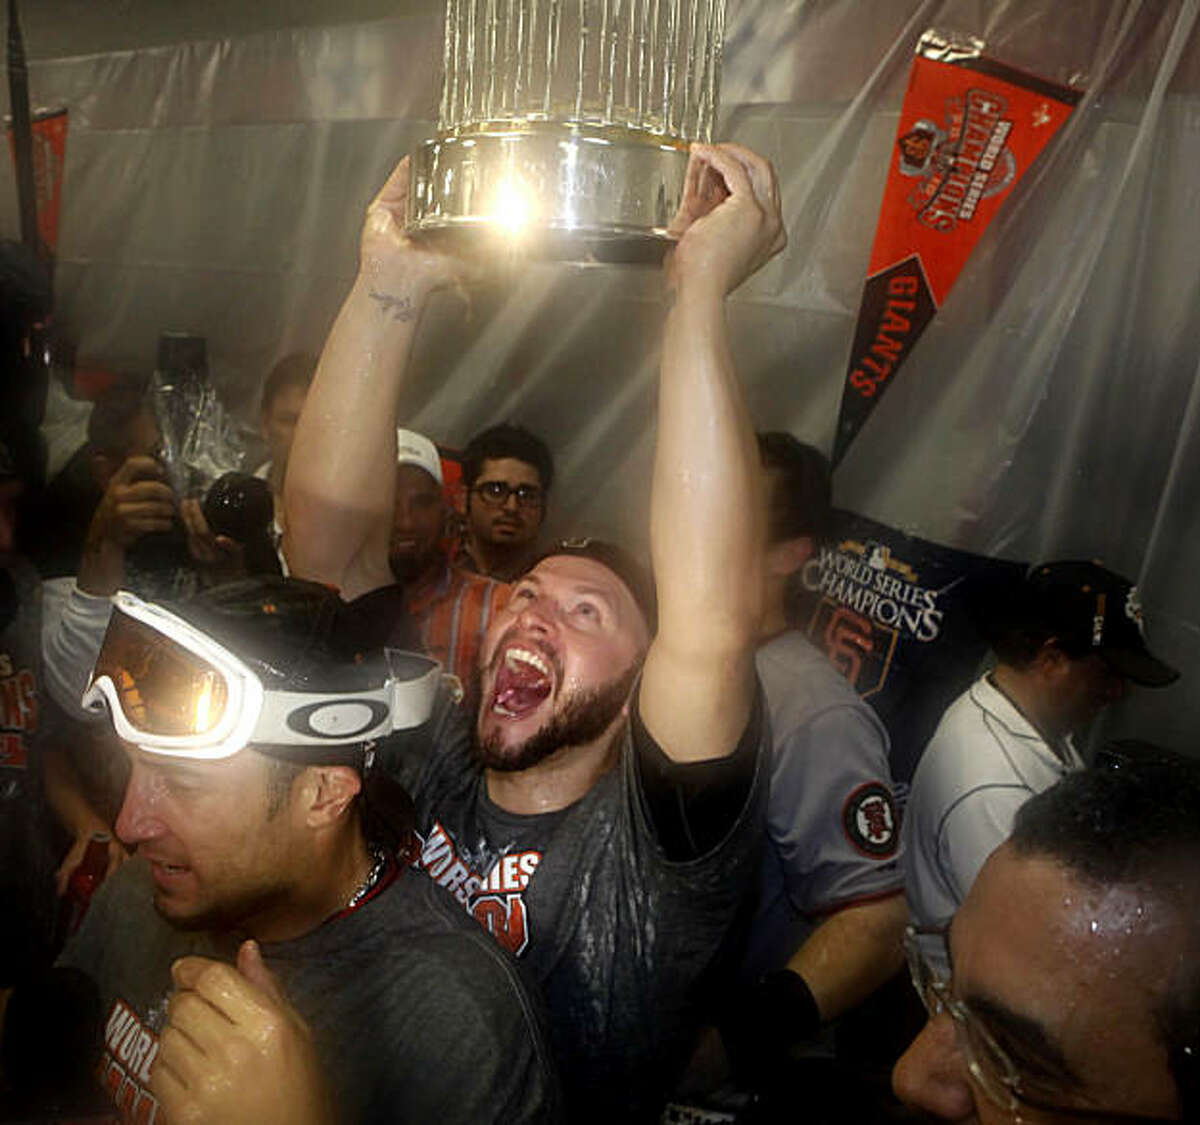 San Francisco Giants' Cody Ross (13) lifts the 2010 World Series Championship trophy over his head in the Visiting Clubhouse at Rangers Ballpark after the San Francisco Giants win Game 5 of the World Series over the Texas Rangers 3-1 on Monday November 1, 2010 in Arlington, Texas.